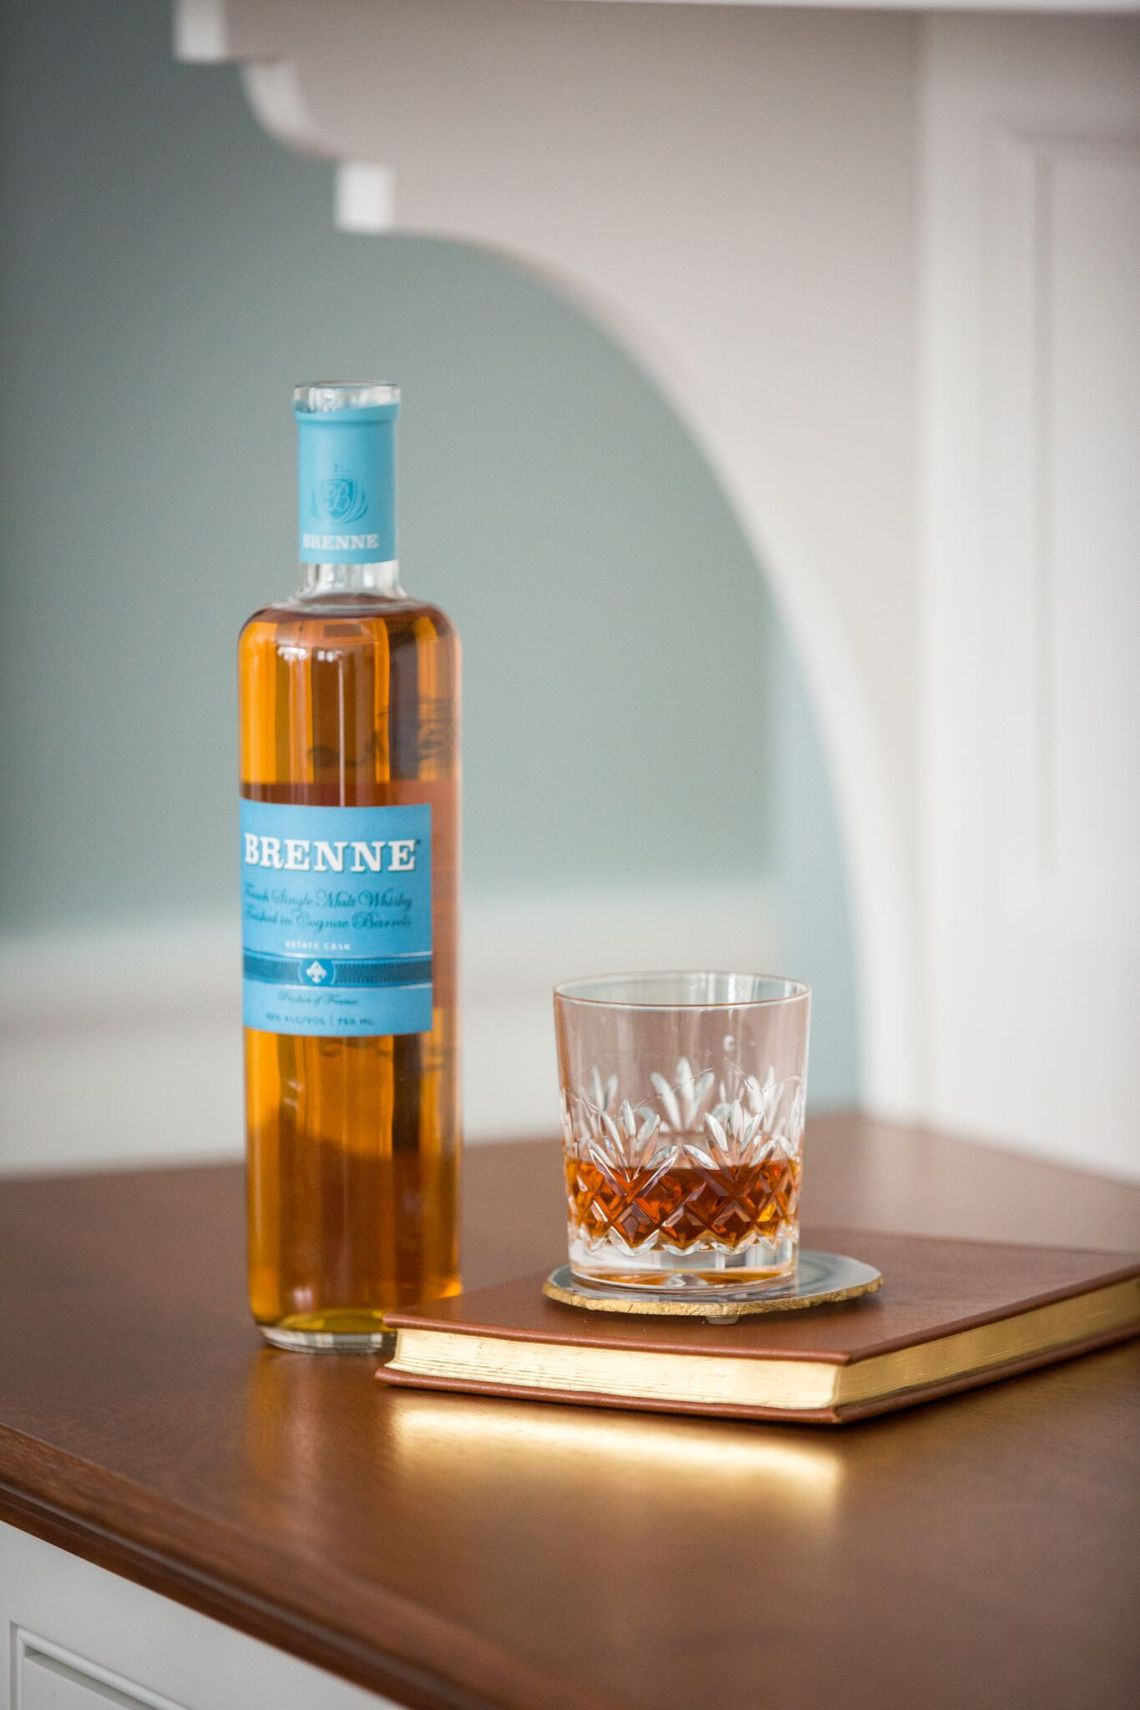 Brenne Ten French Single Malt Whiskey